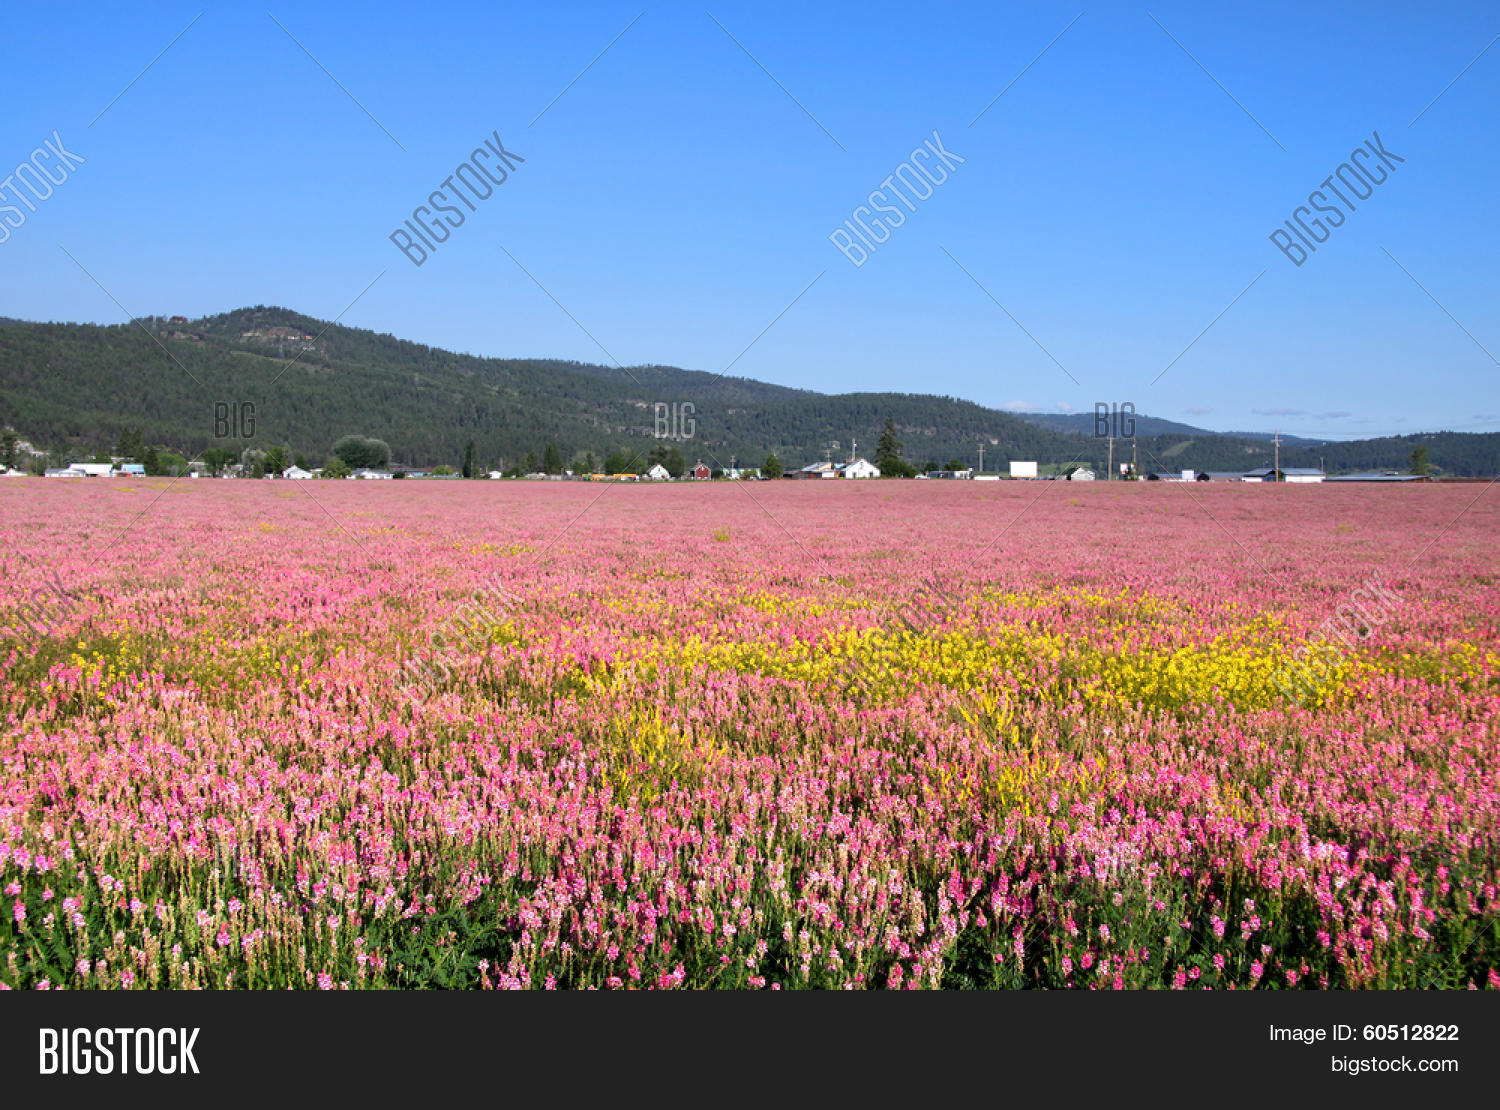 Pink Flower Fields Image Photo Free Trial Bigstock